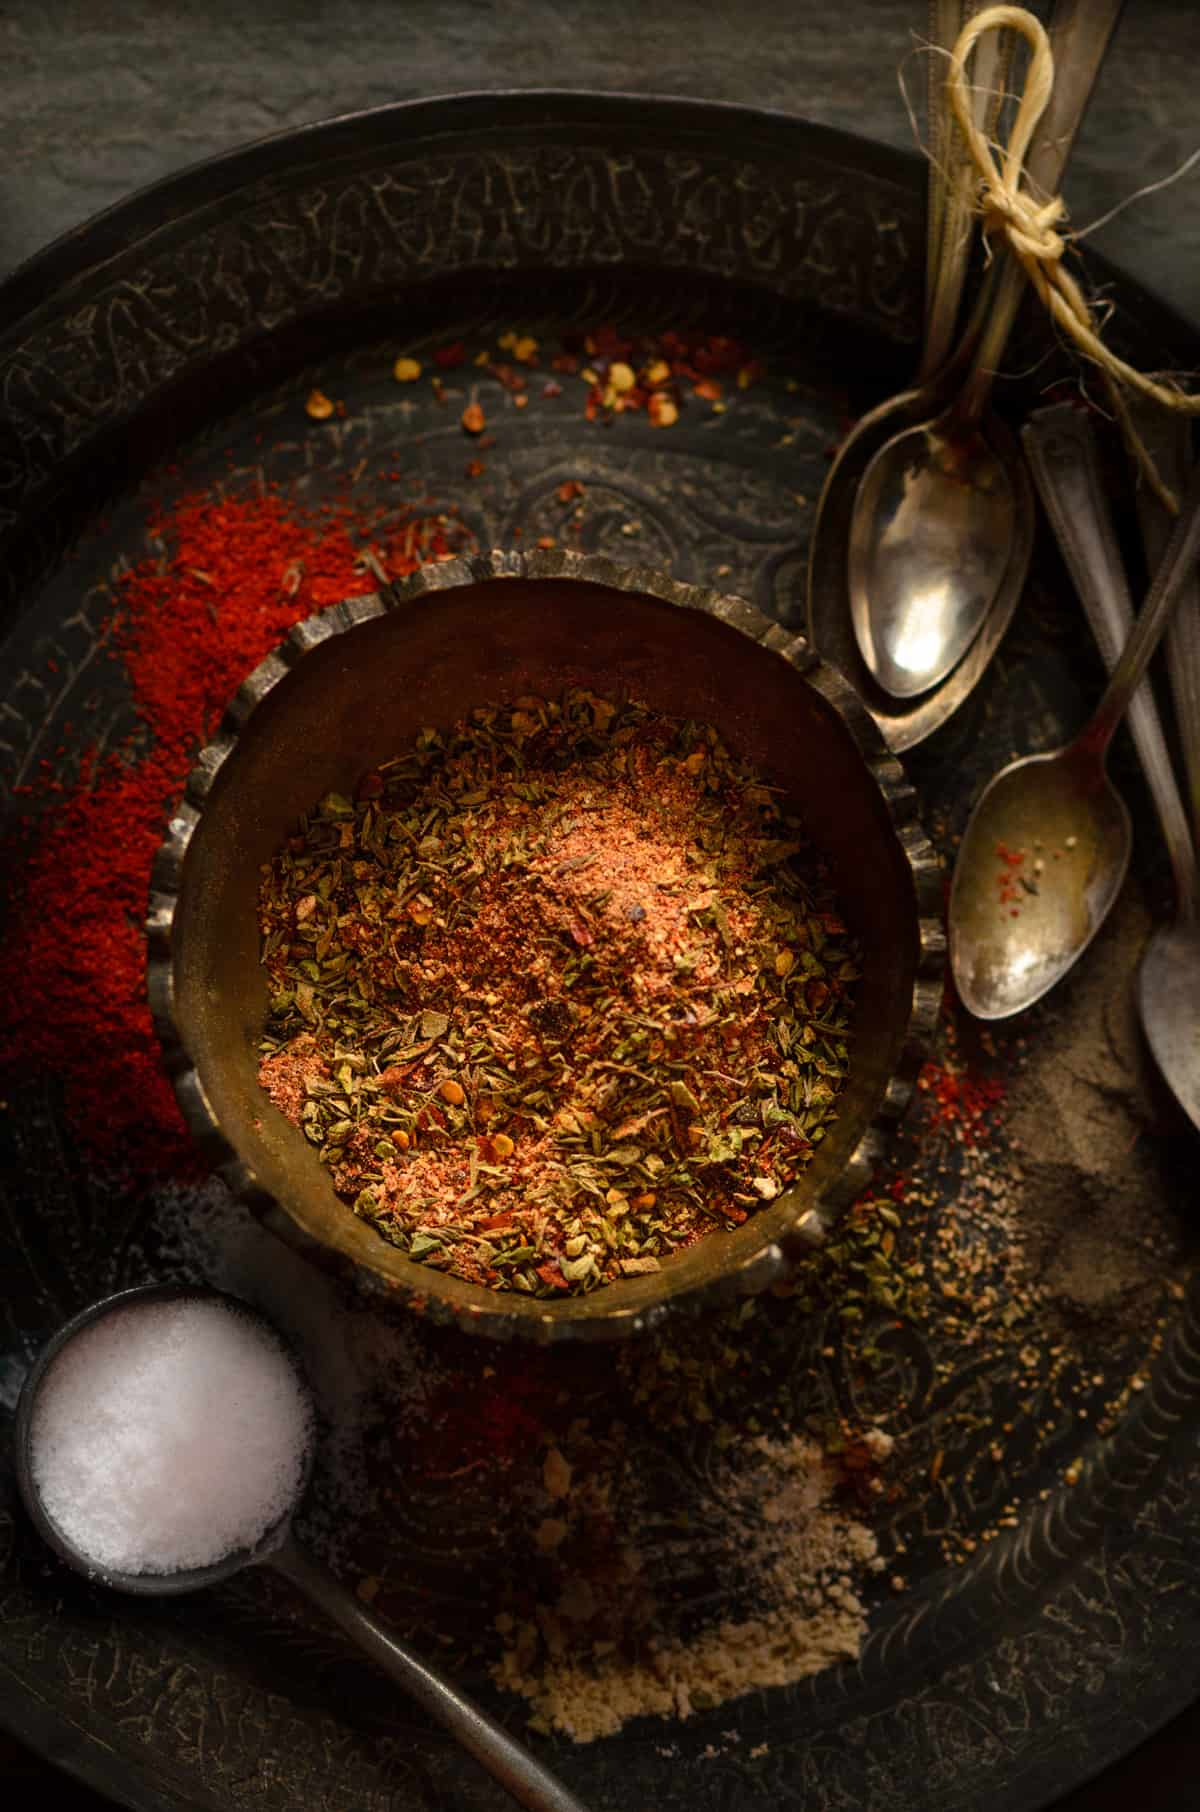 Cajun spice mix in brass bowl kept on plate with salt and spices spread around.